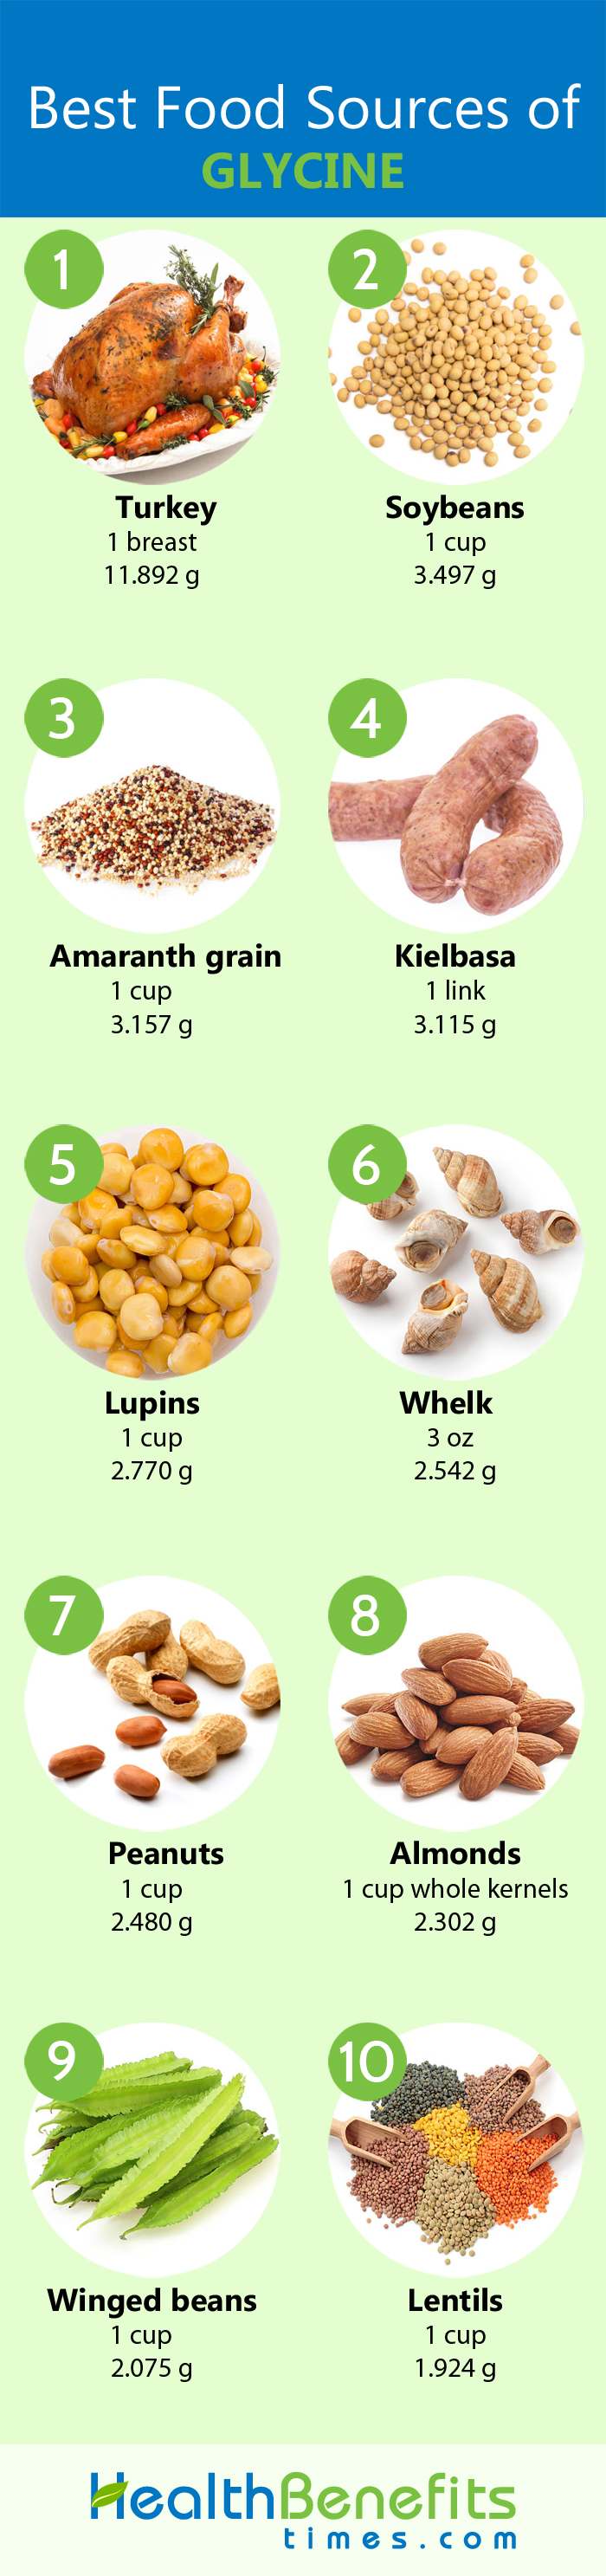 Glycine Facts and Health Benefits | Nutrition